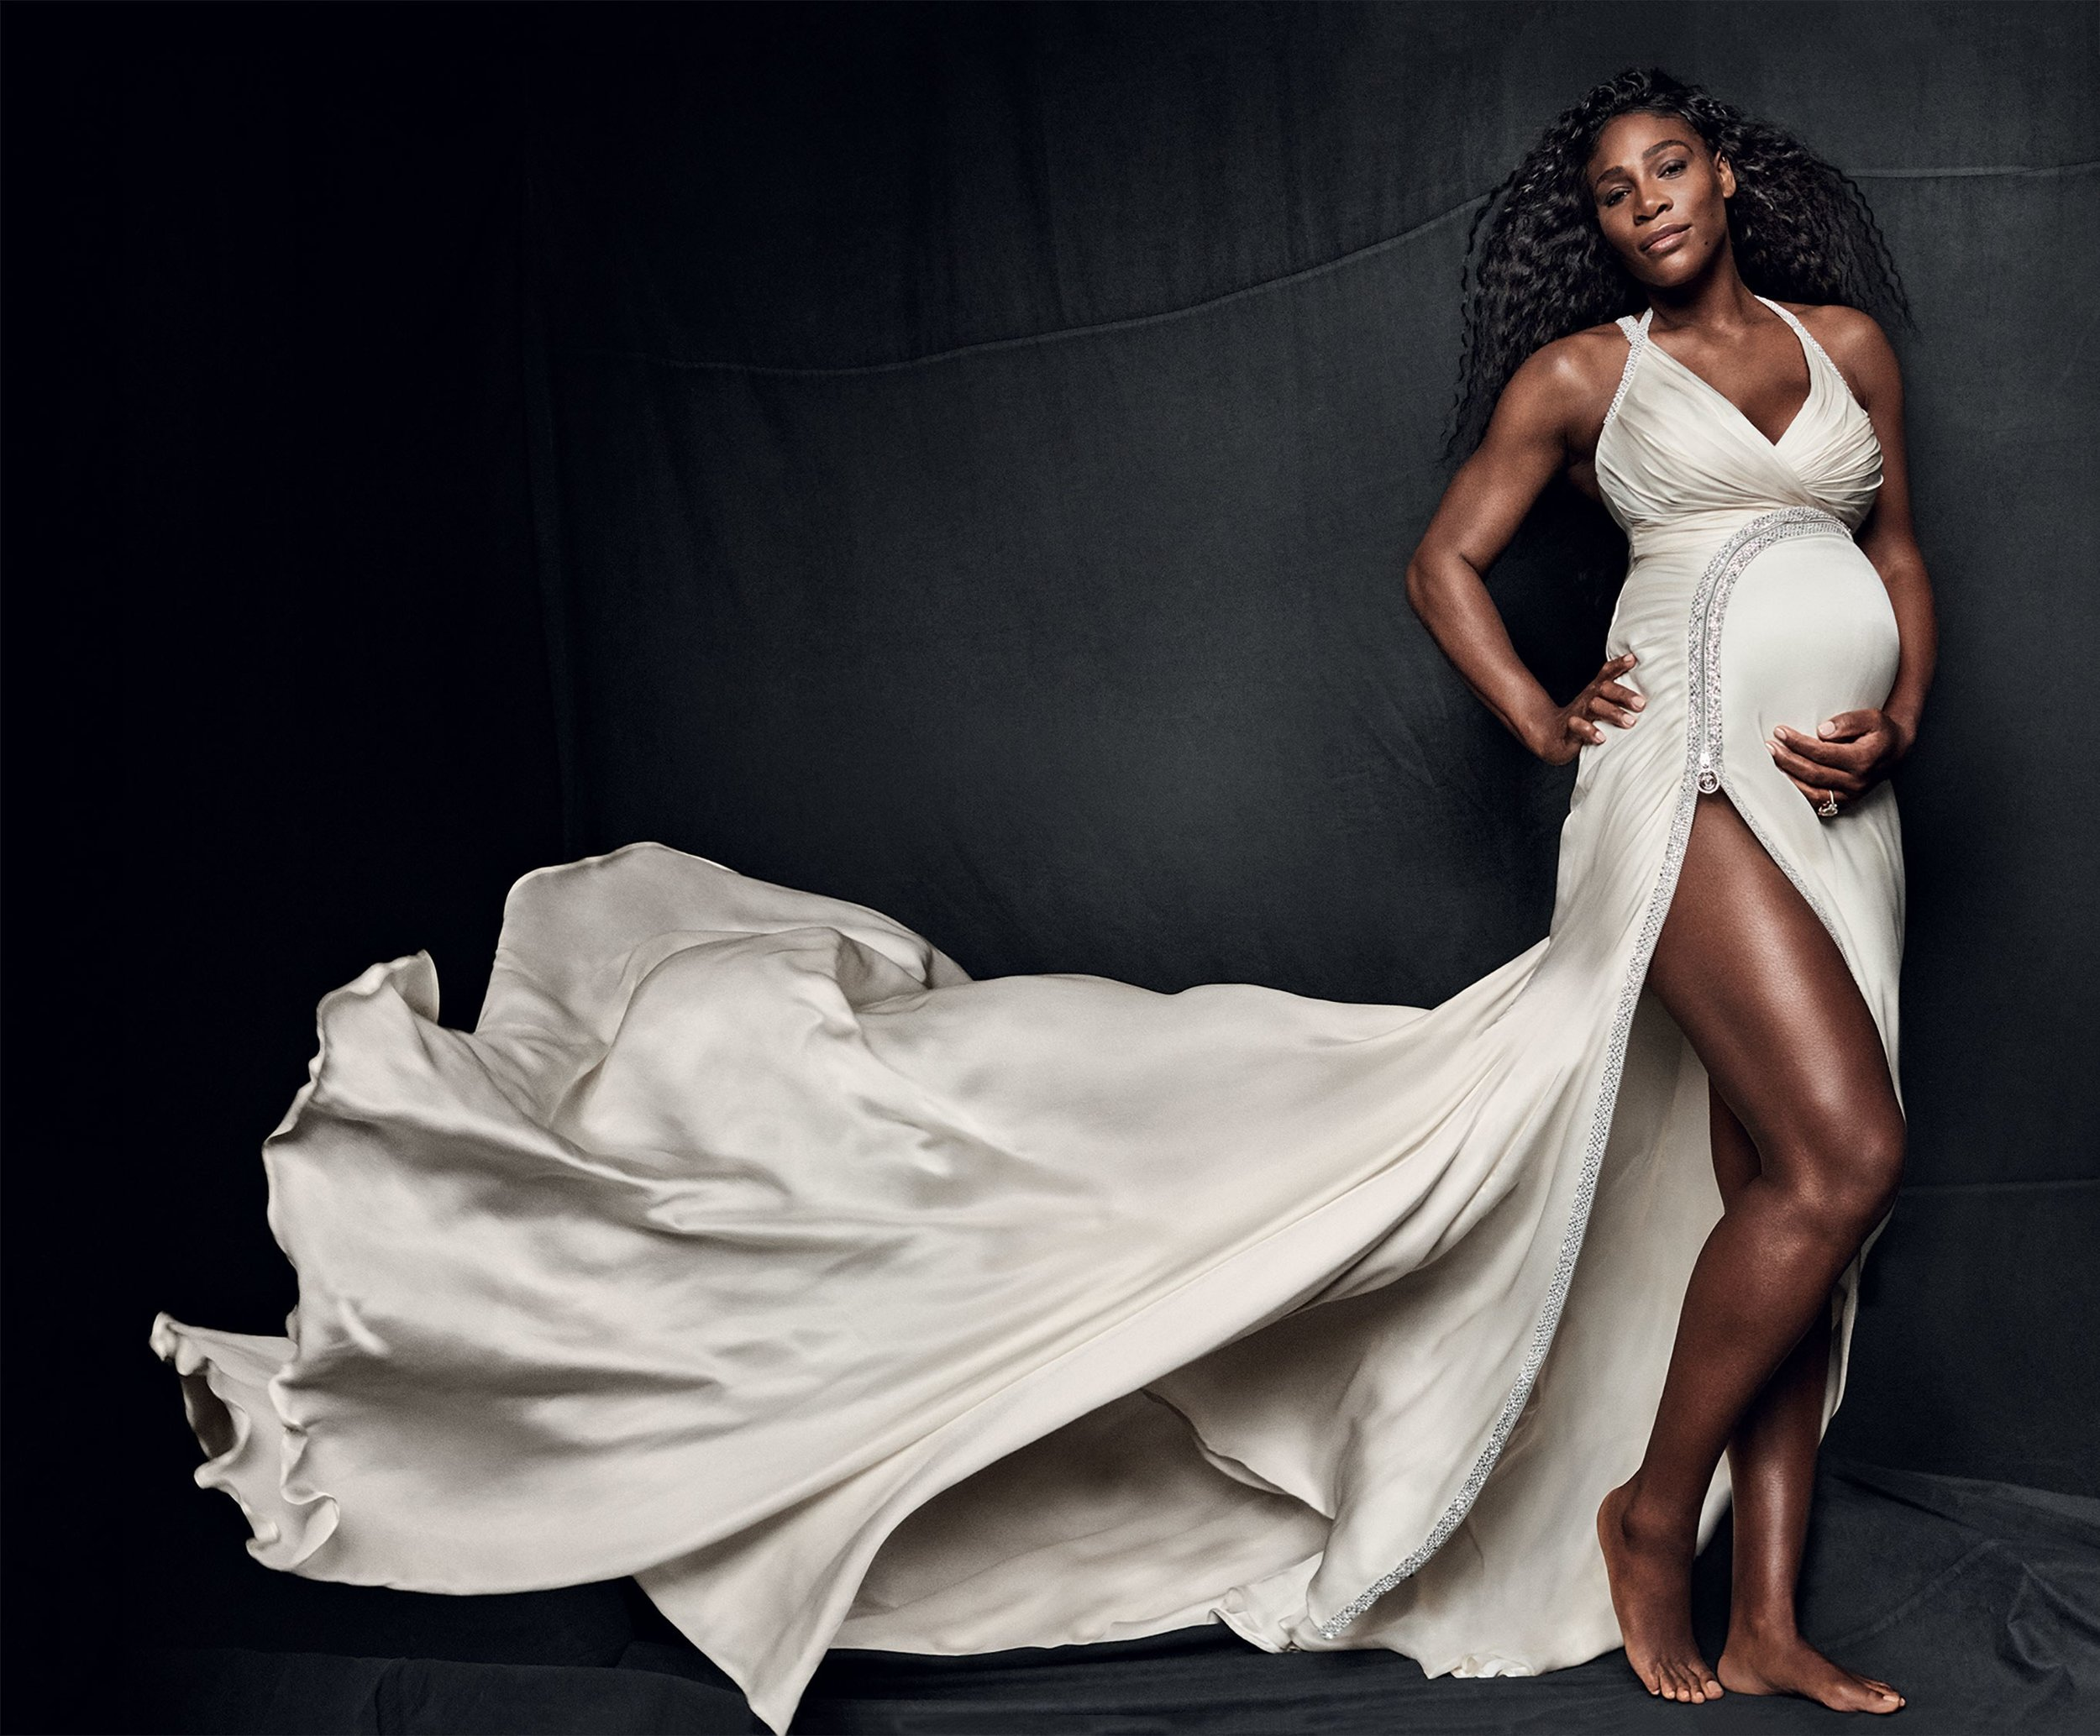 01-serena-williams-vogue-september-2017.jpg